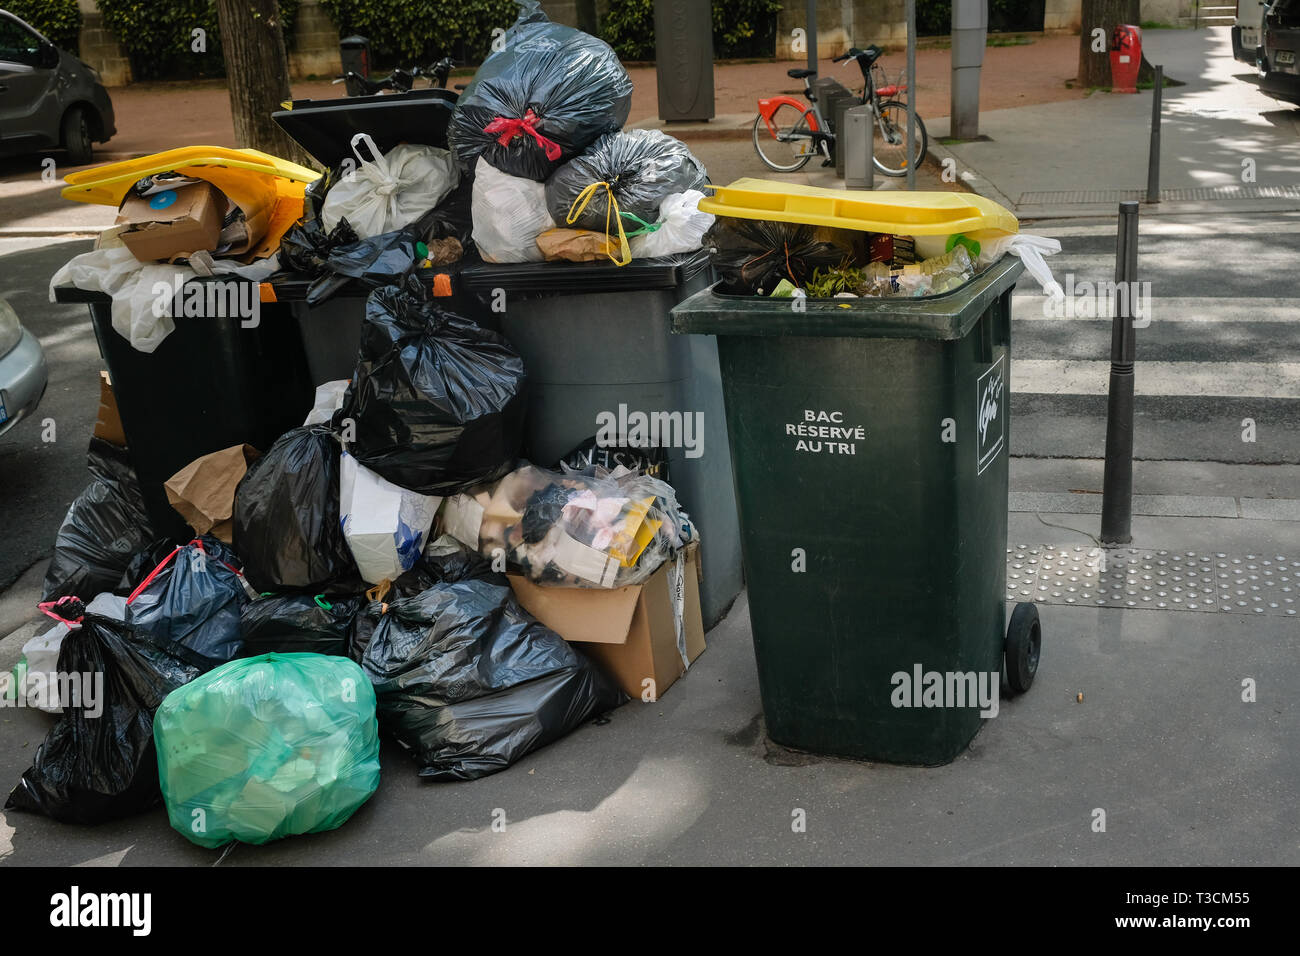 Full bins on the sidewalks of the city of Lyon during the garbage workers' strike - Stock Image